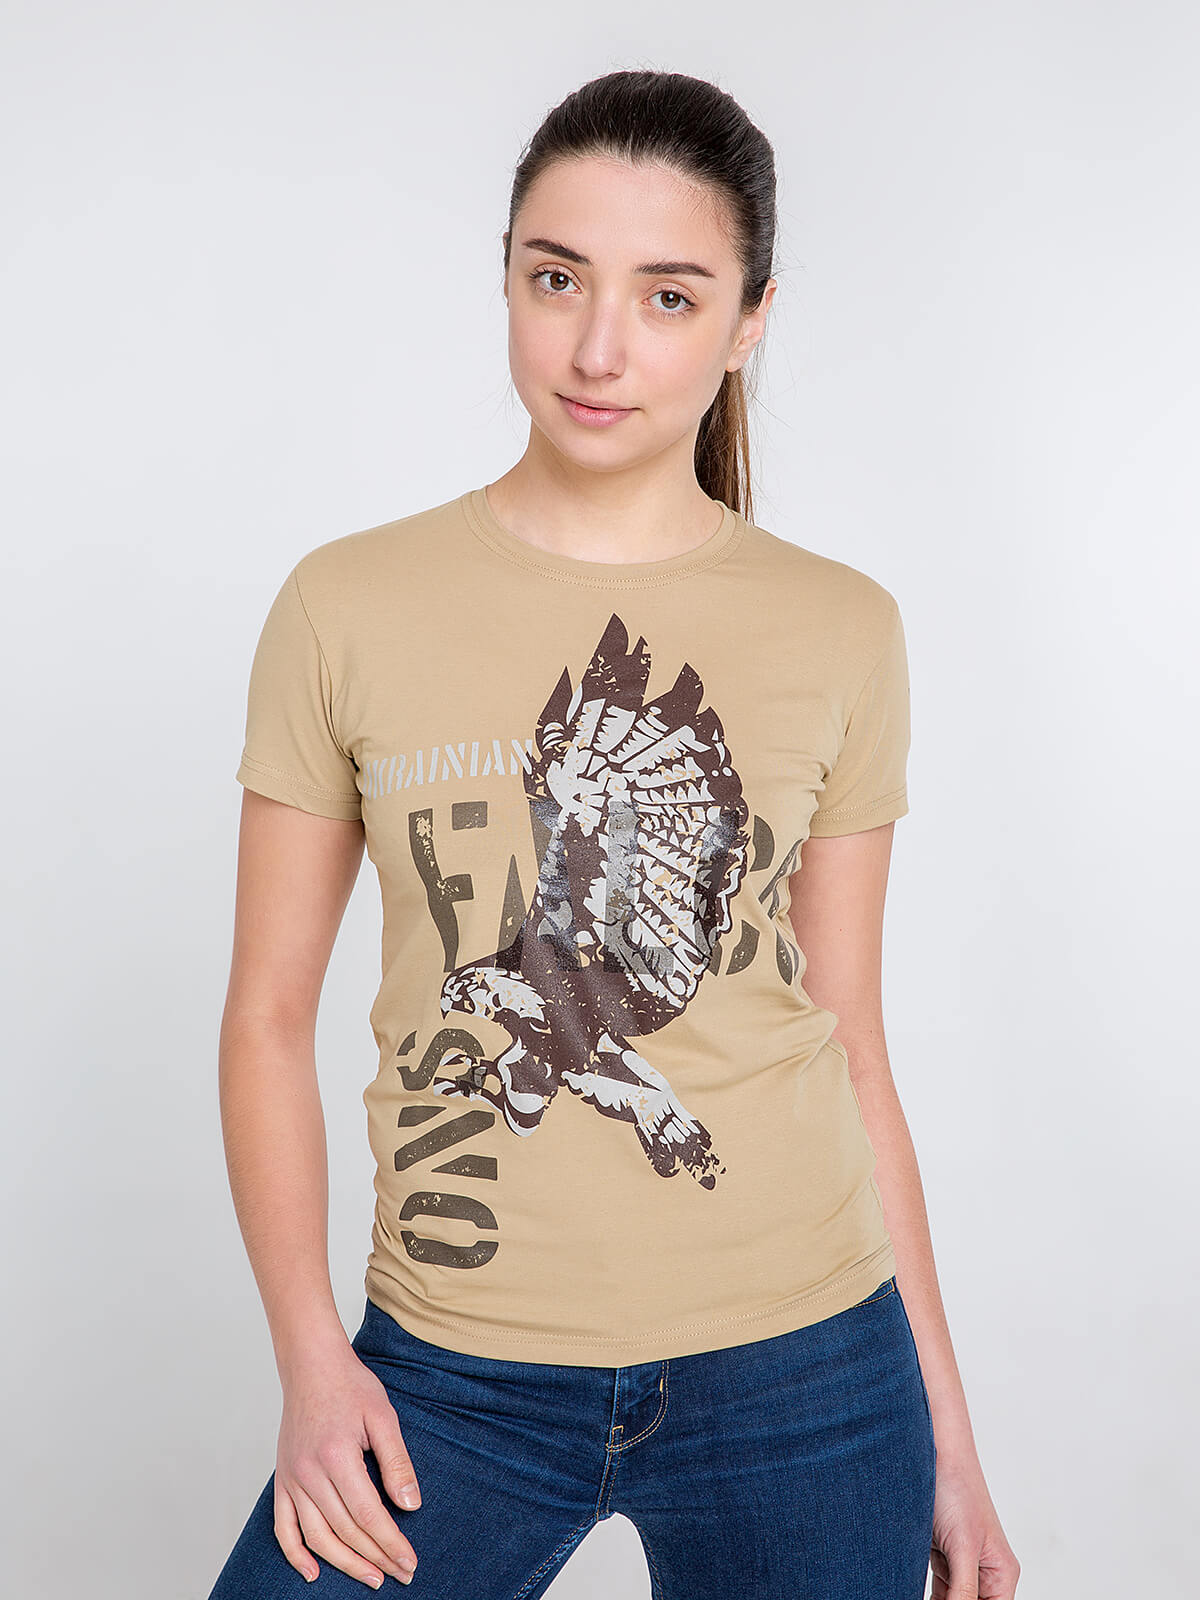 Women's T-Shirt Ukrainian Falcons. Color sand. Material: 95% cotton, 5% spandex.